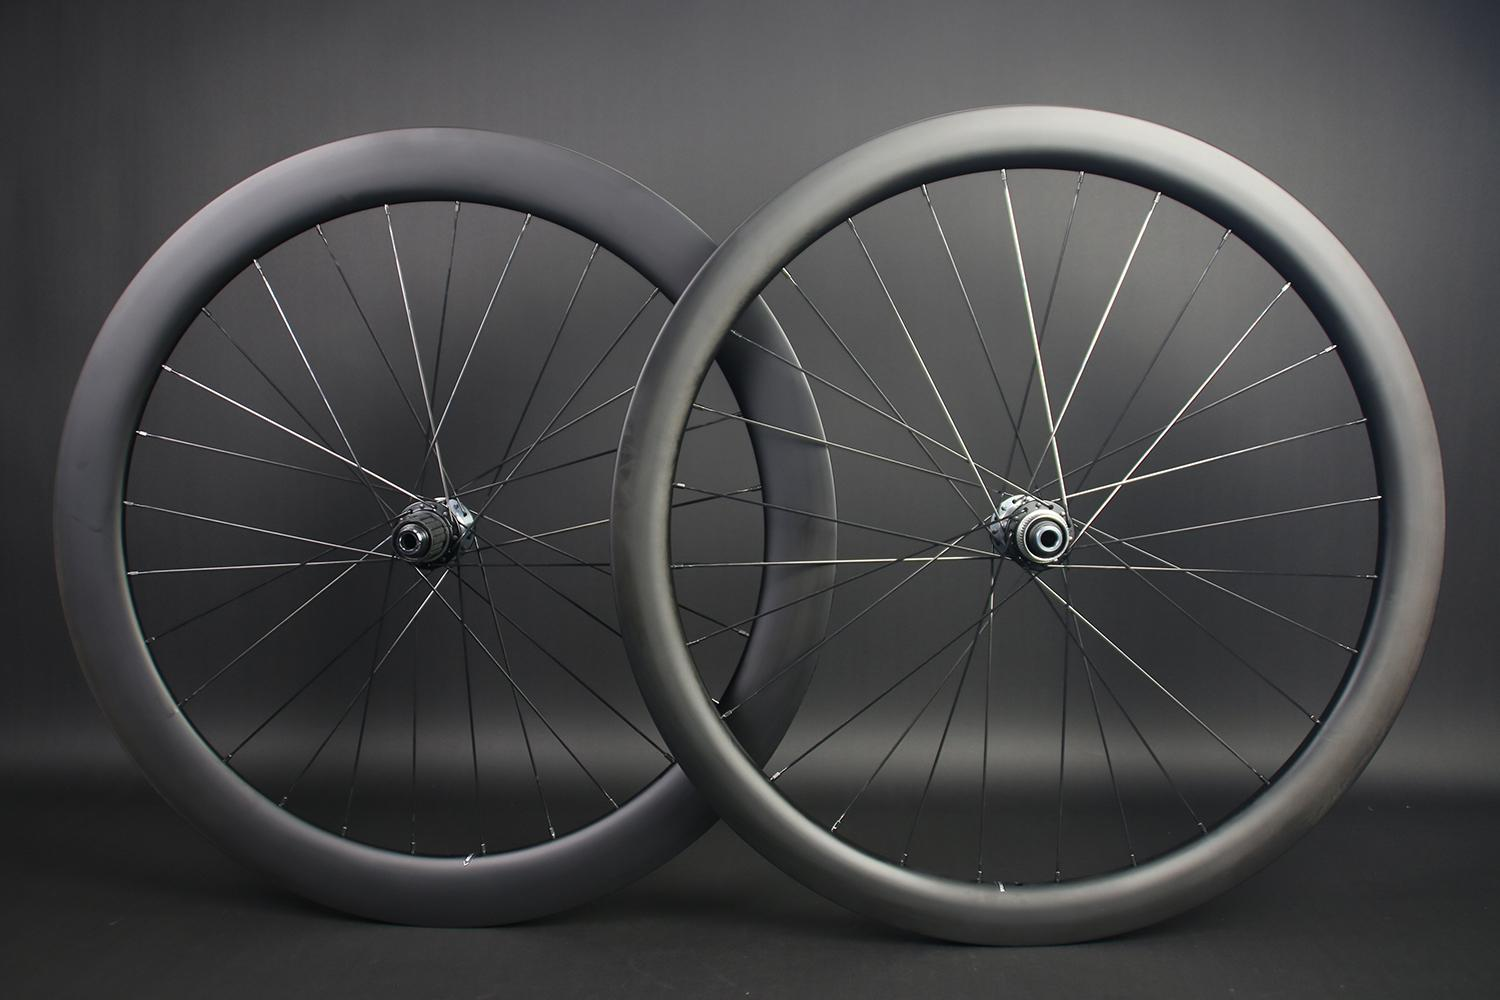 WR45-Front-AR56-Rear-700C-mixed-depth-wheelset